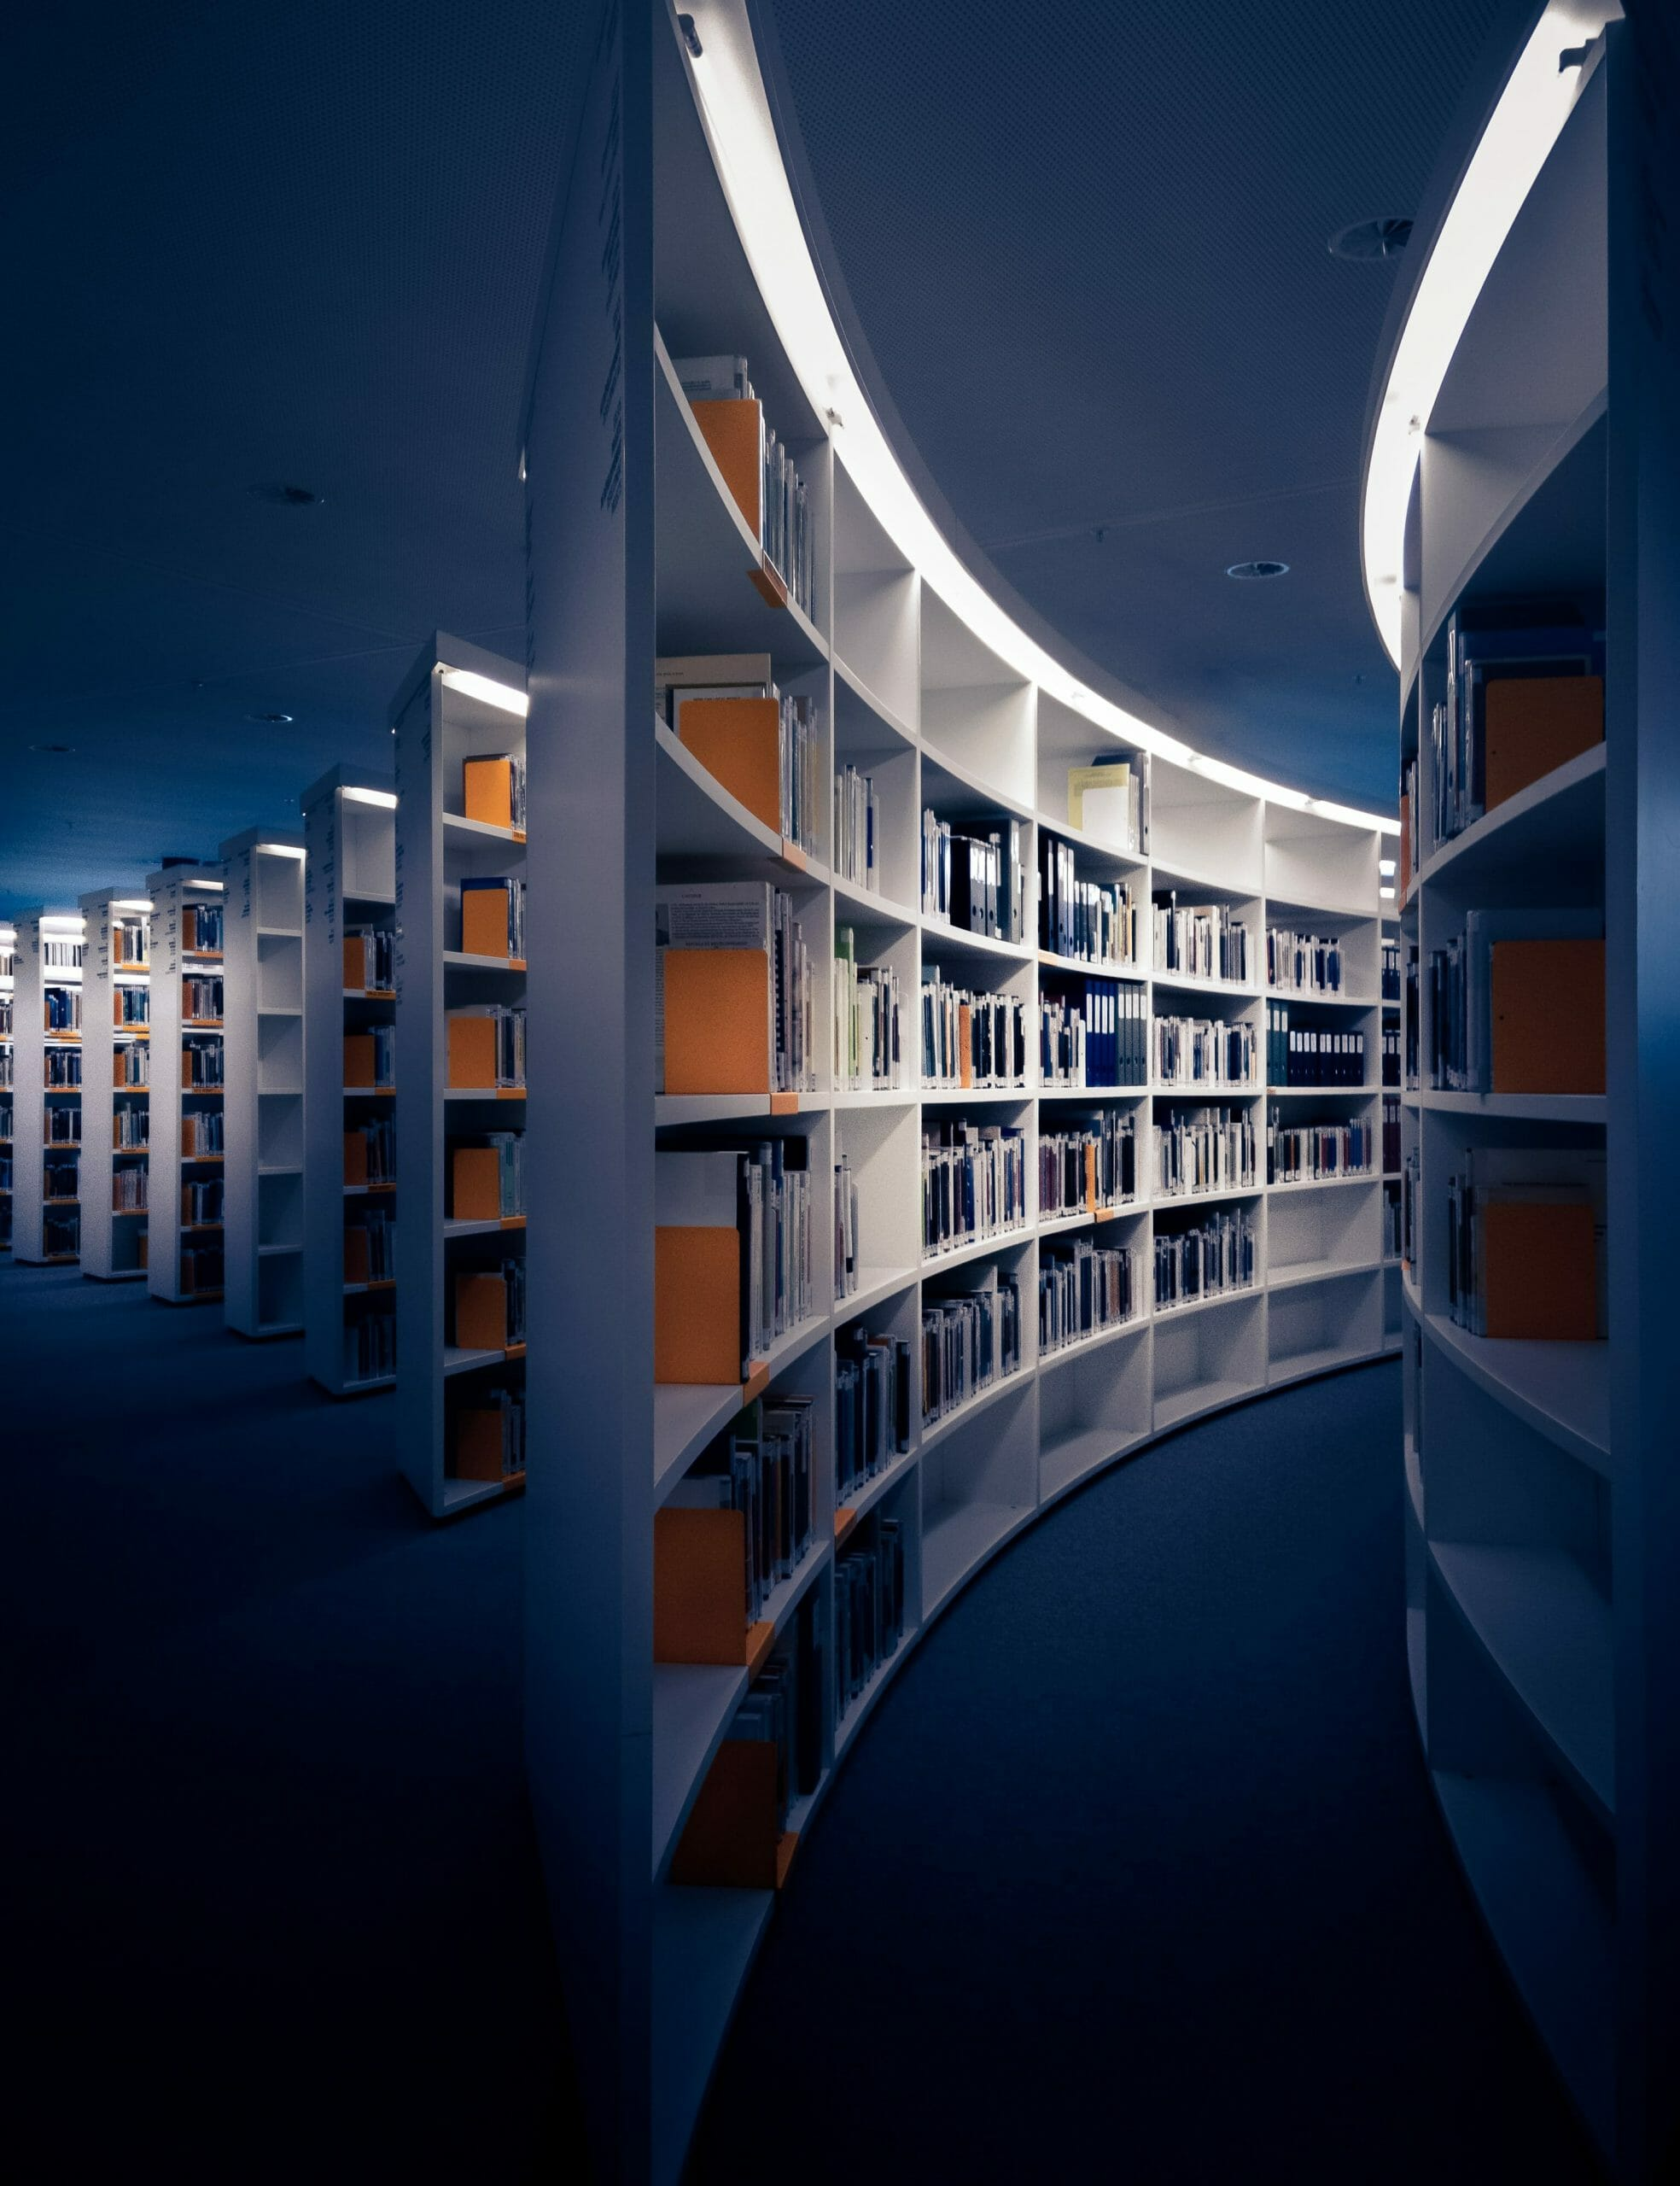 Gender Bias in the Academy - Image of an Academic Library